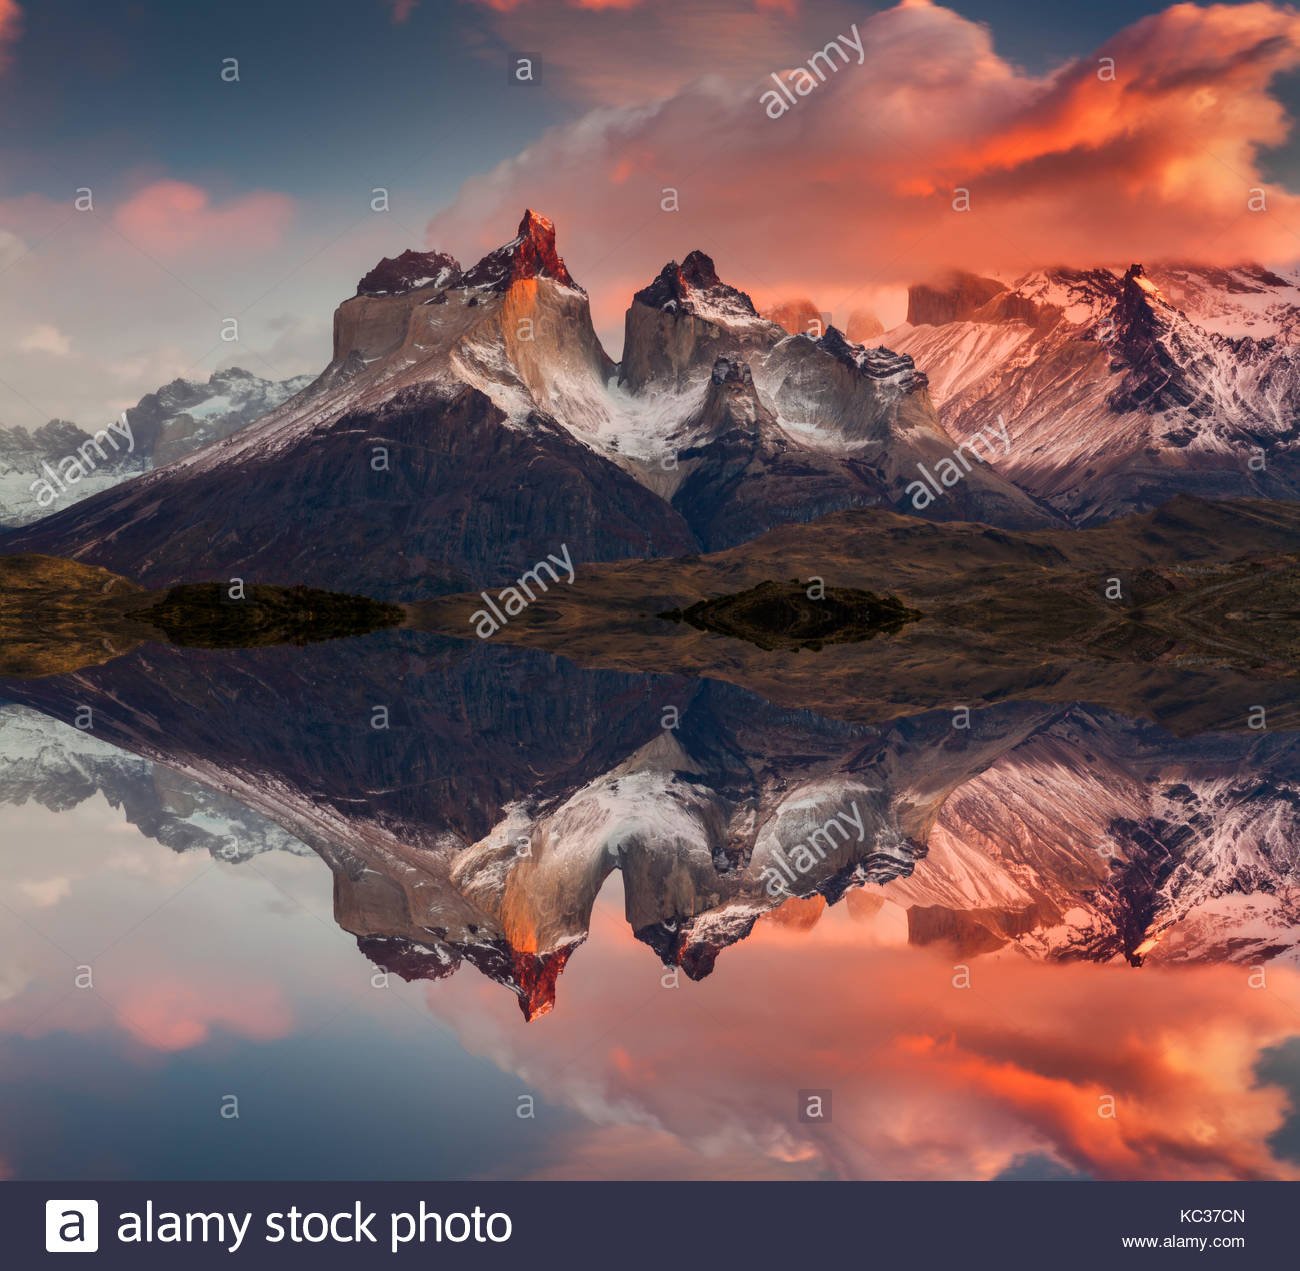 Sunrise in Torres del Paine National Park, Lake Pehoe and Cuernos mountains, Patagonia, Chile - Stock Image